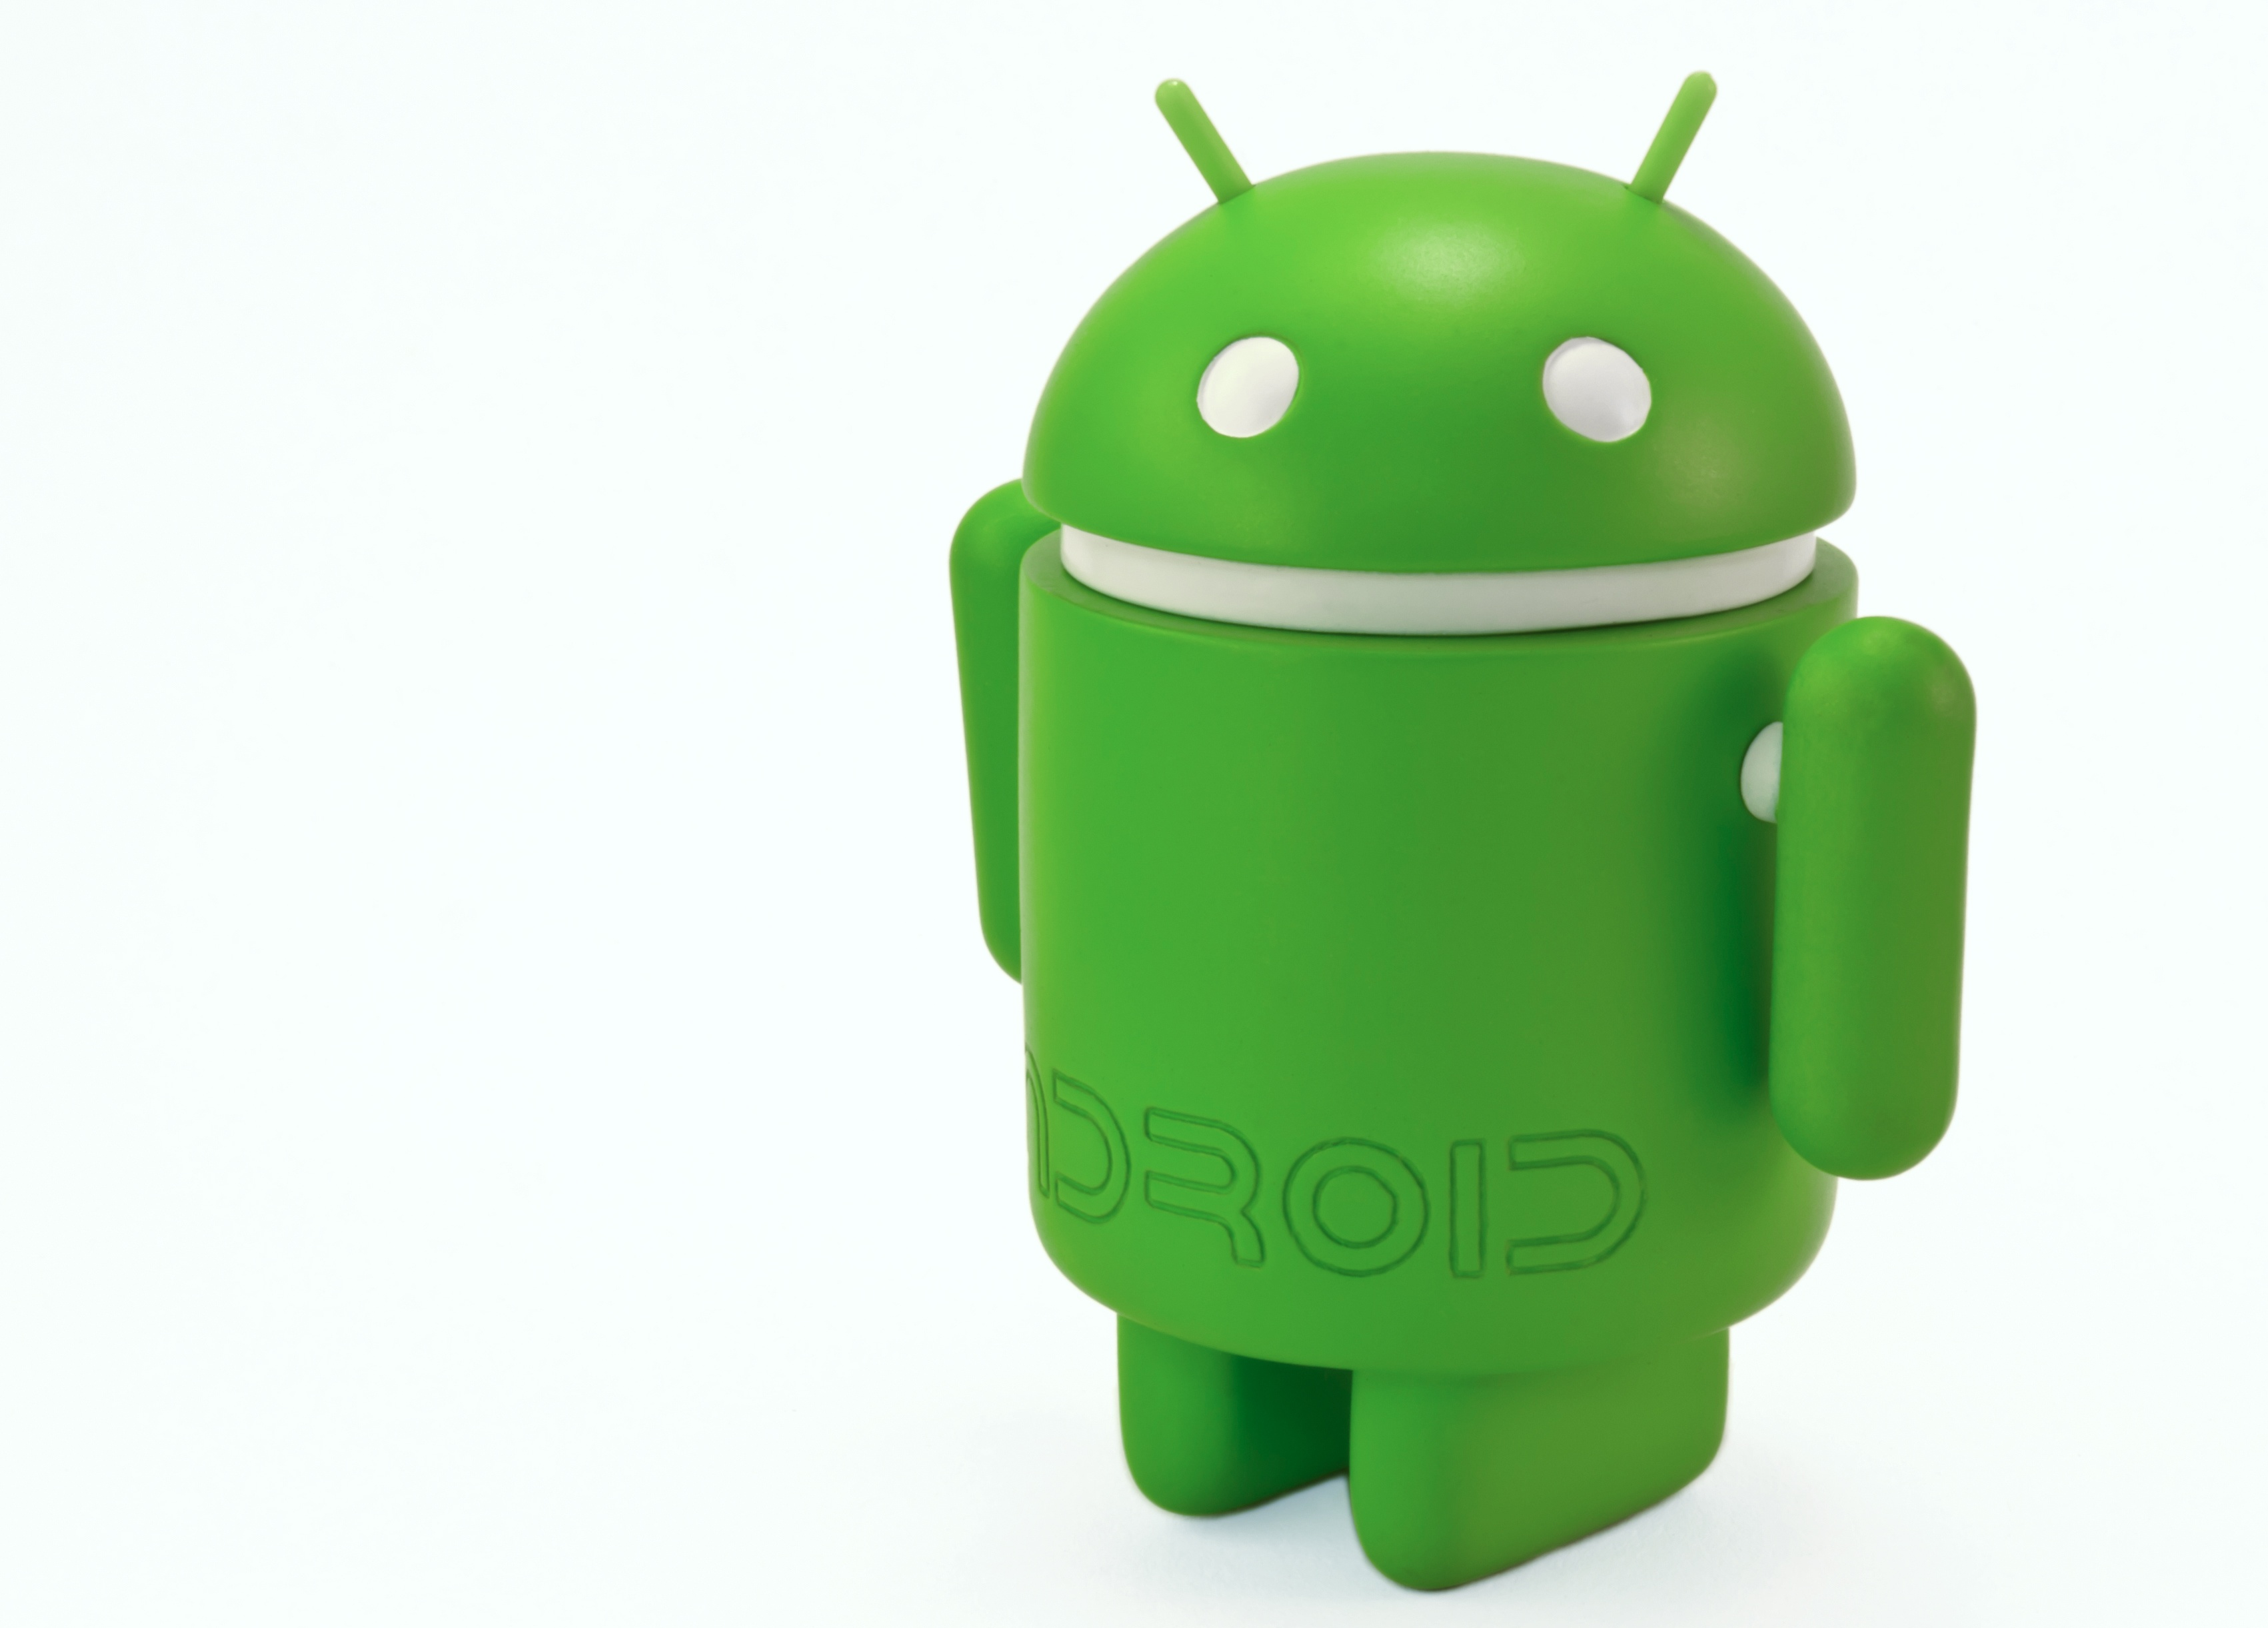 Security Concerns with Old and Slow Androids